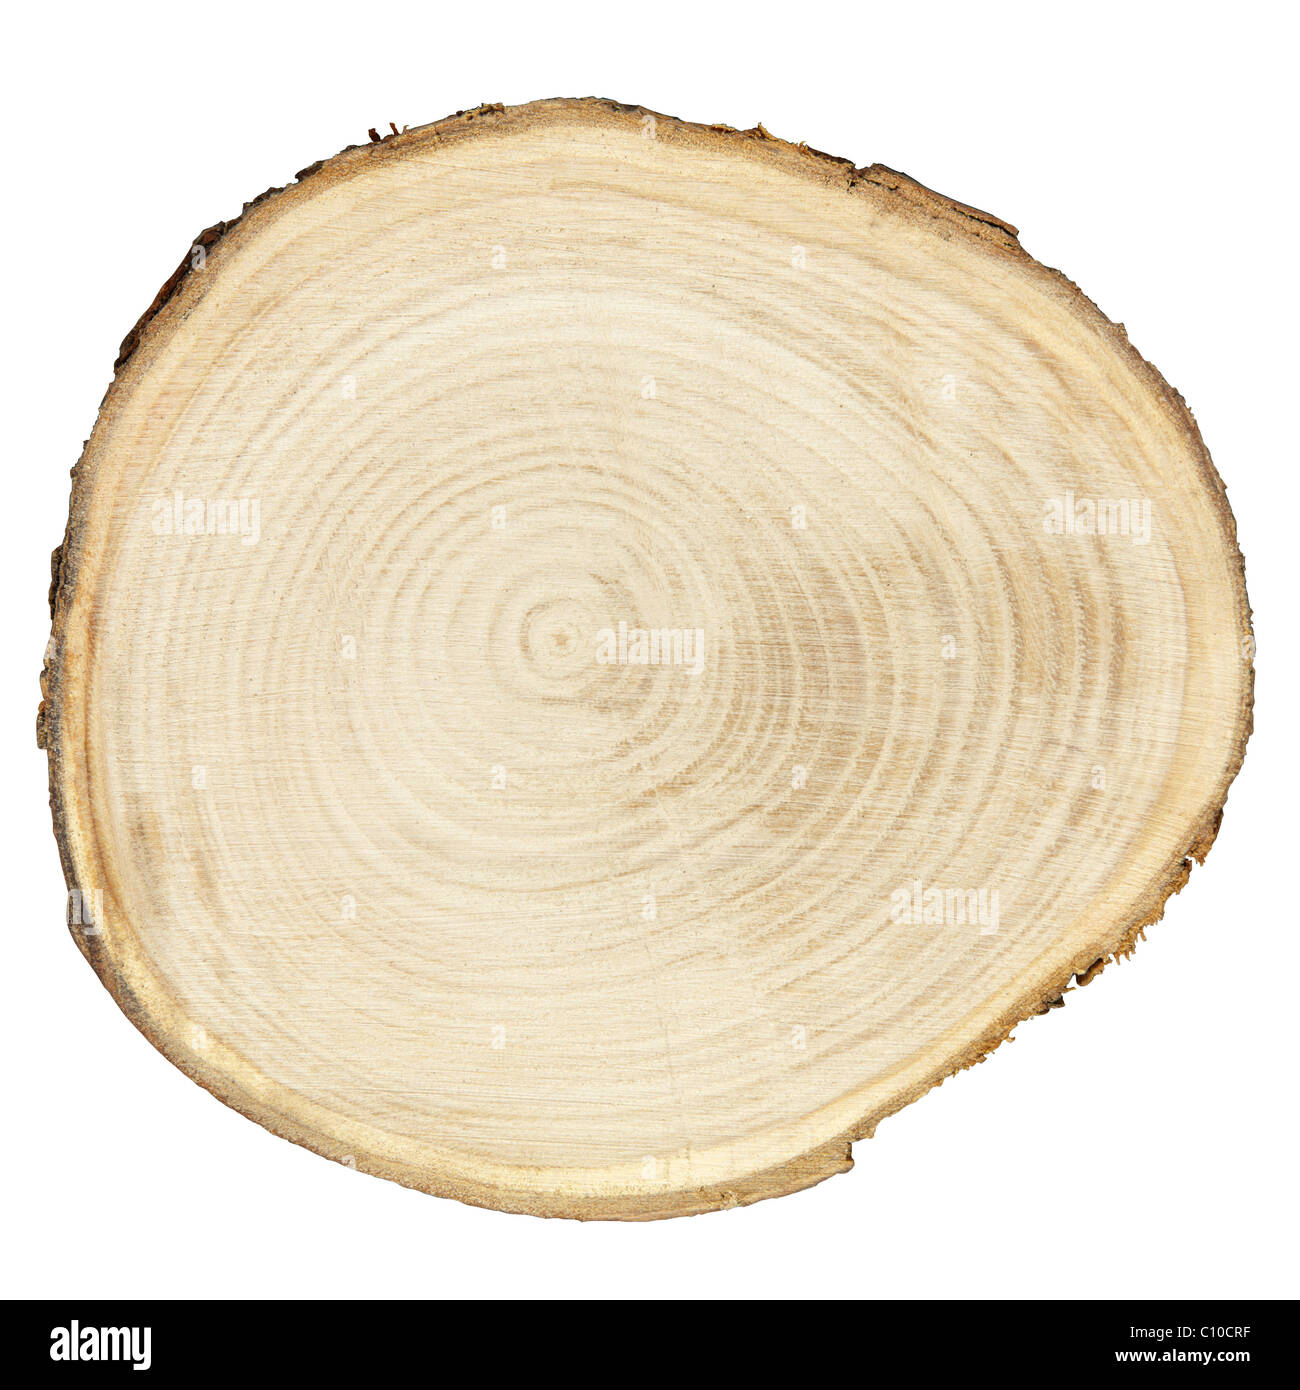 Cross section of tree trunk isolated on white - Stock Image